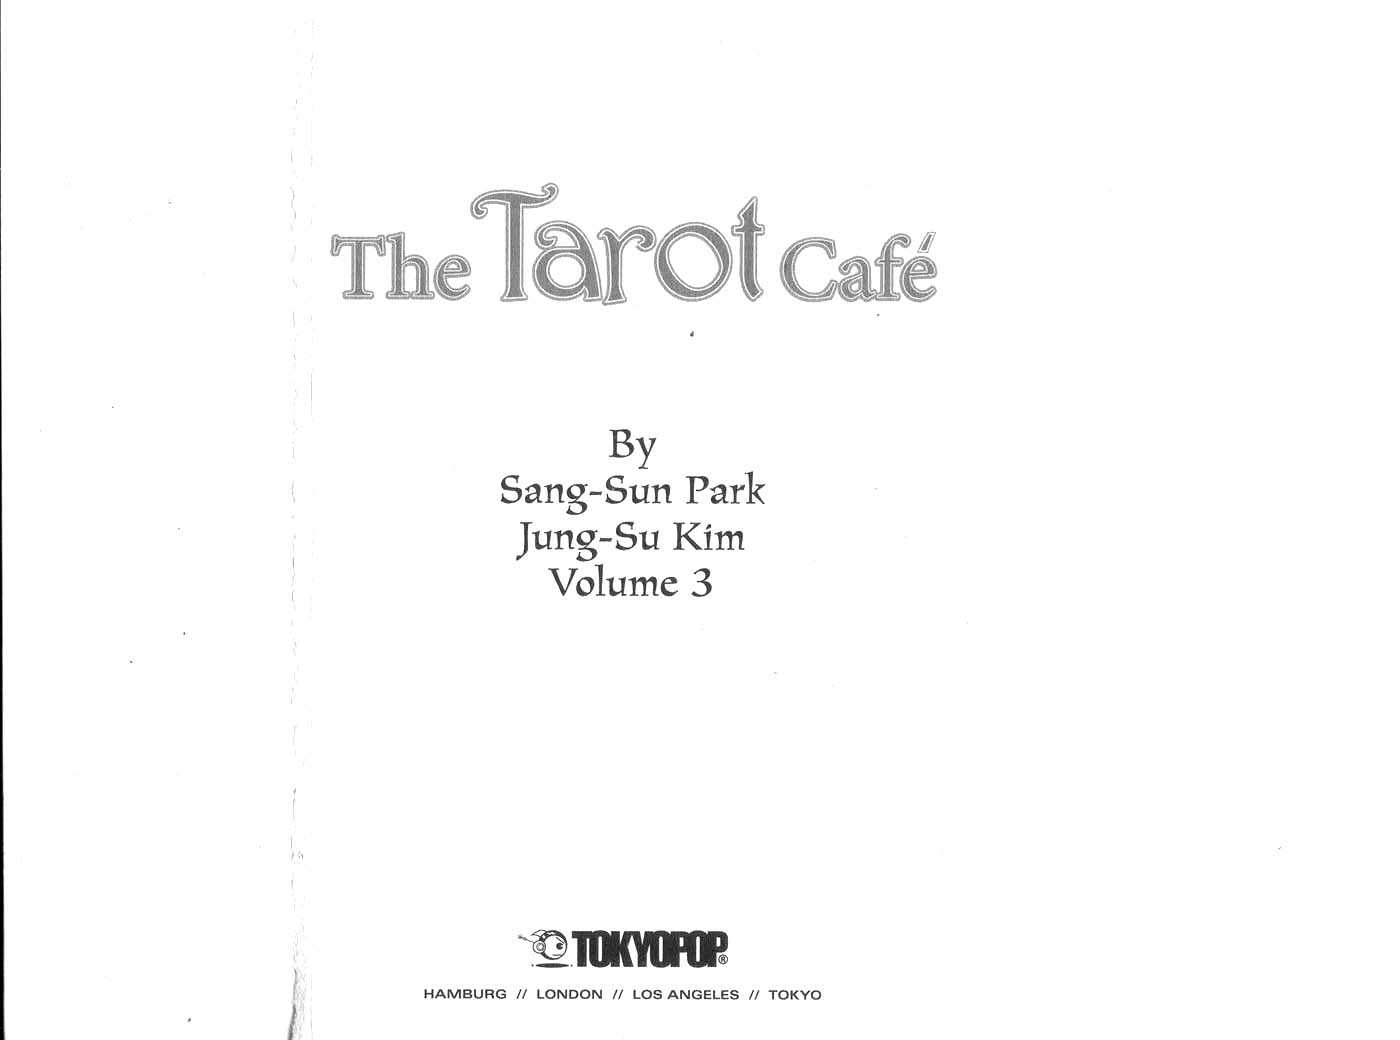 The Tarot Cafe 0 Page 1